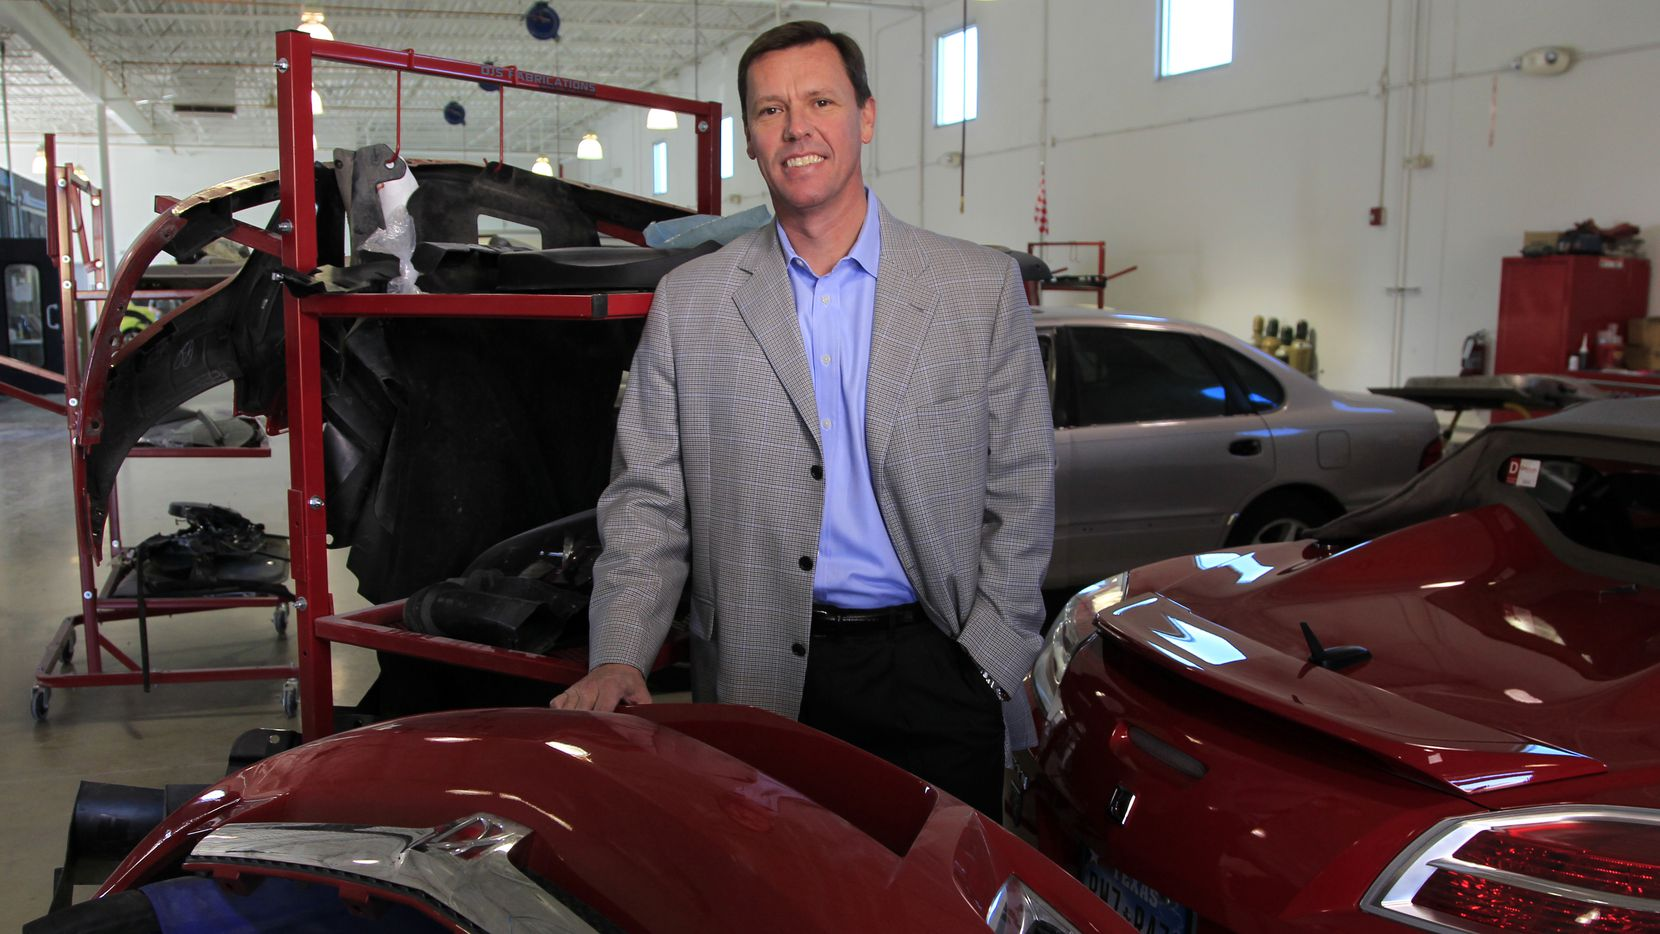 Steve Grimshaw, CEO of Caliber Collision Centers, stands in the body shop at the company's newest location in Keller on Friday, January 27, 2012.  (David Woo/The Dallas Morning News)